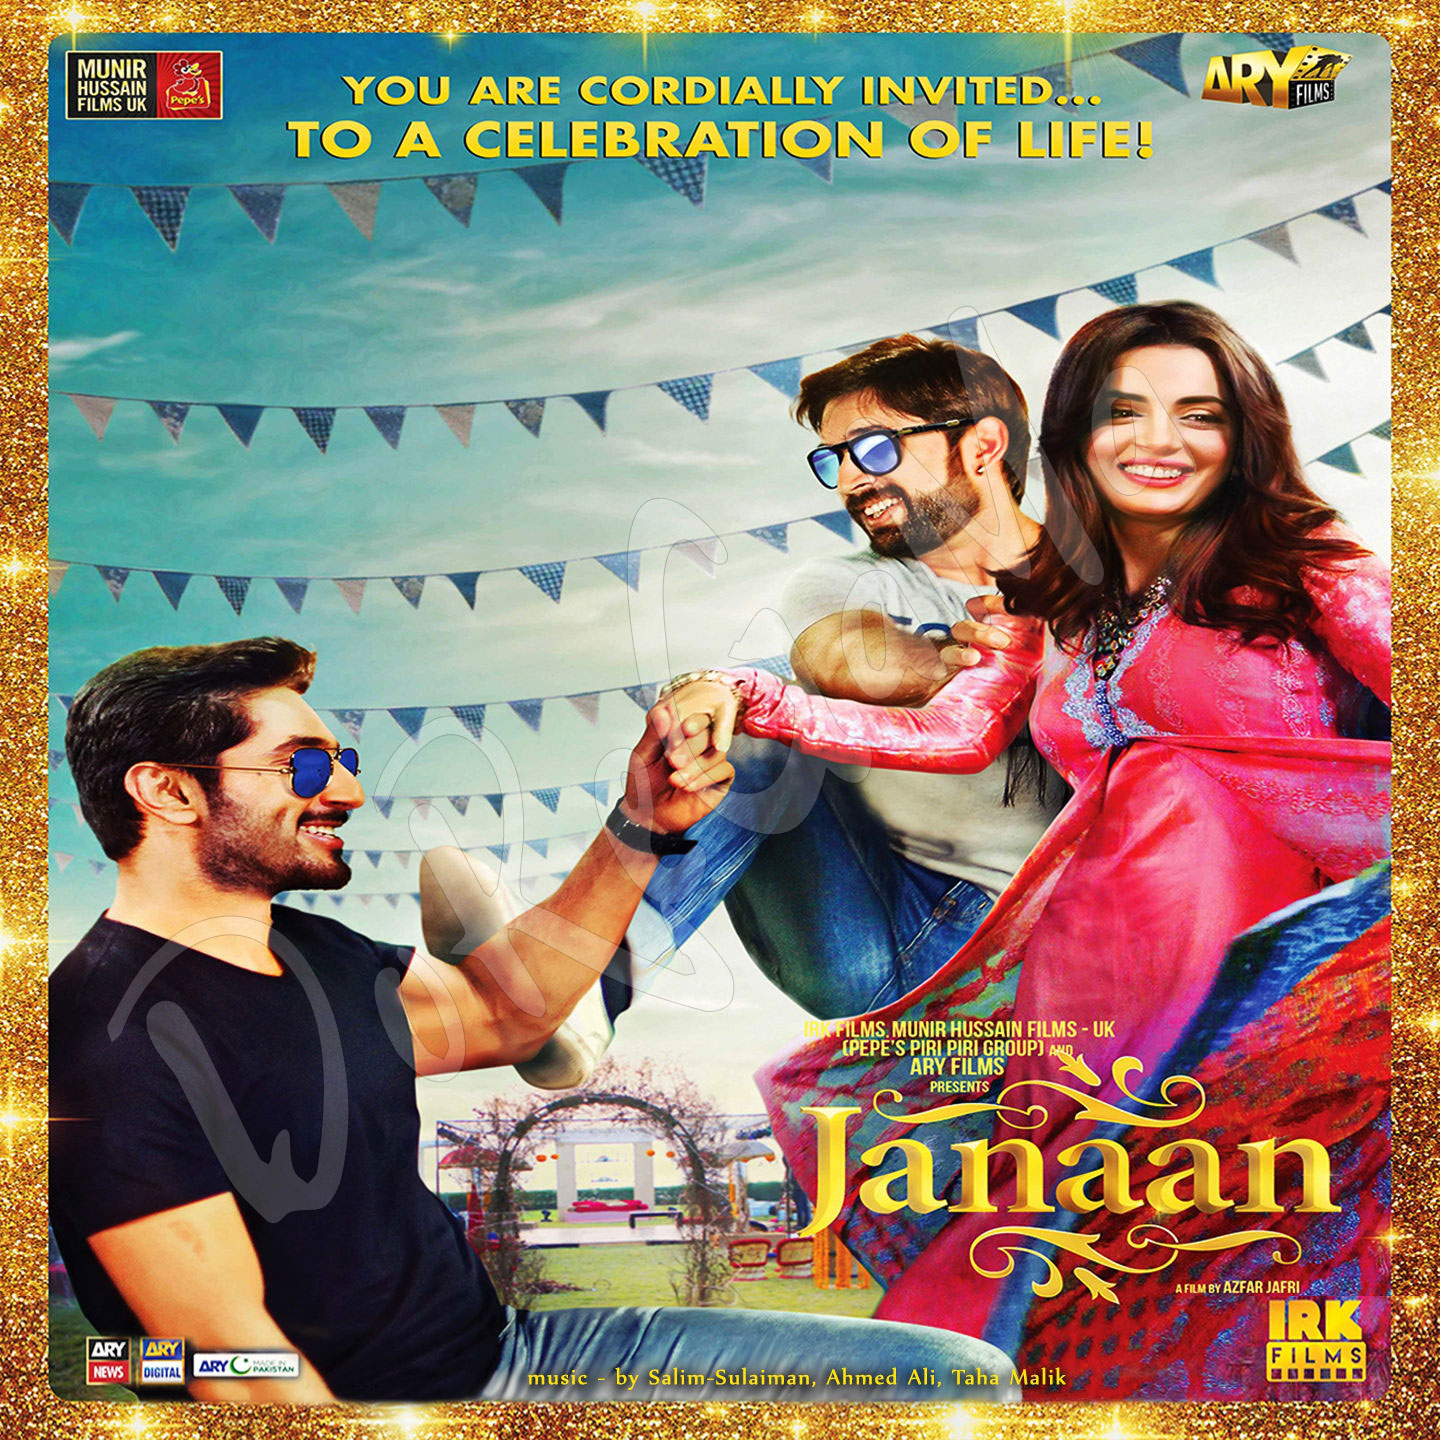 Janaan-2016-CD-Front-cover-Poster-Wallpaper